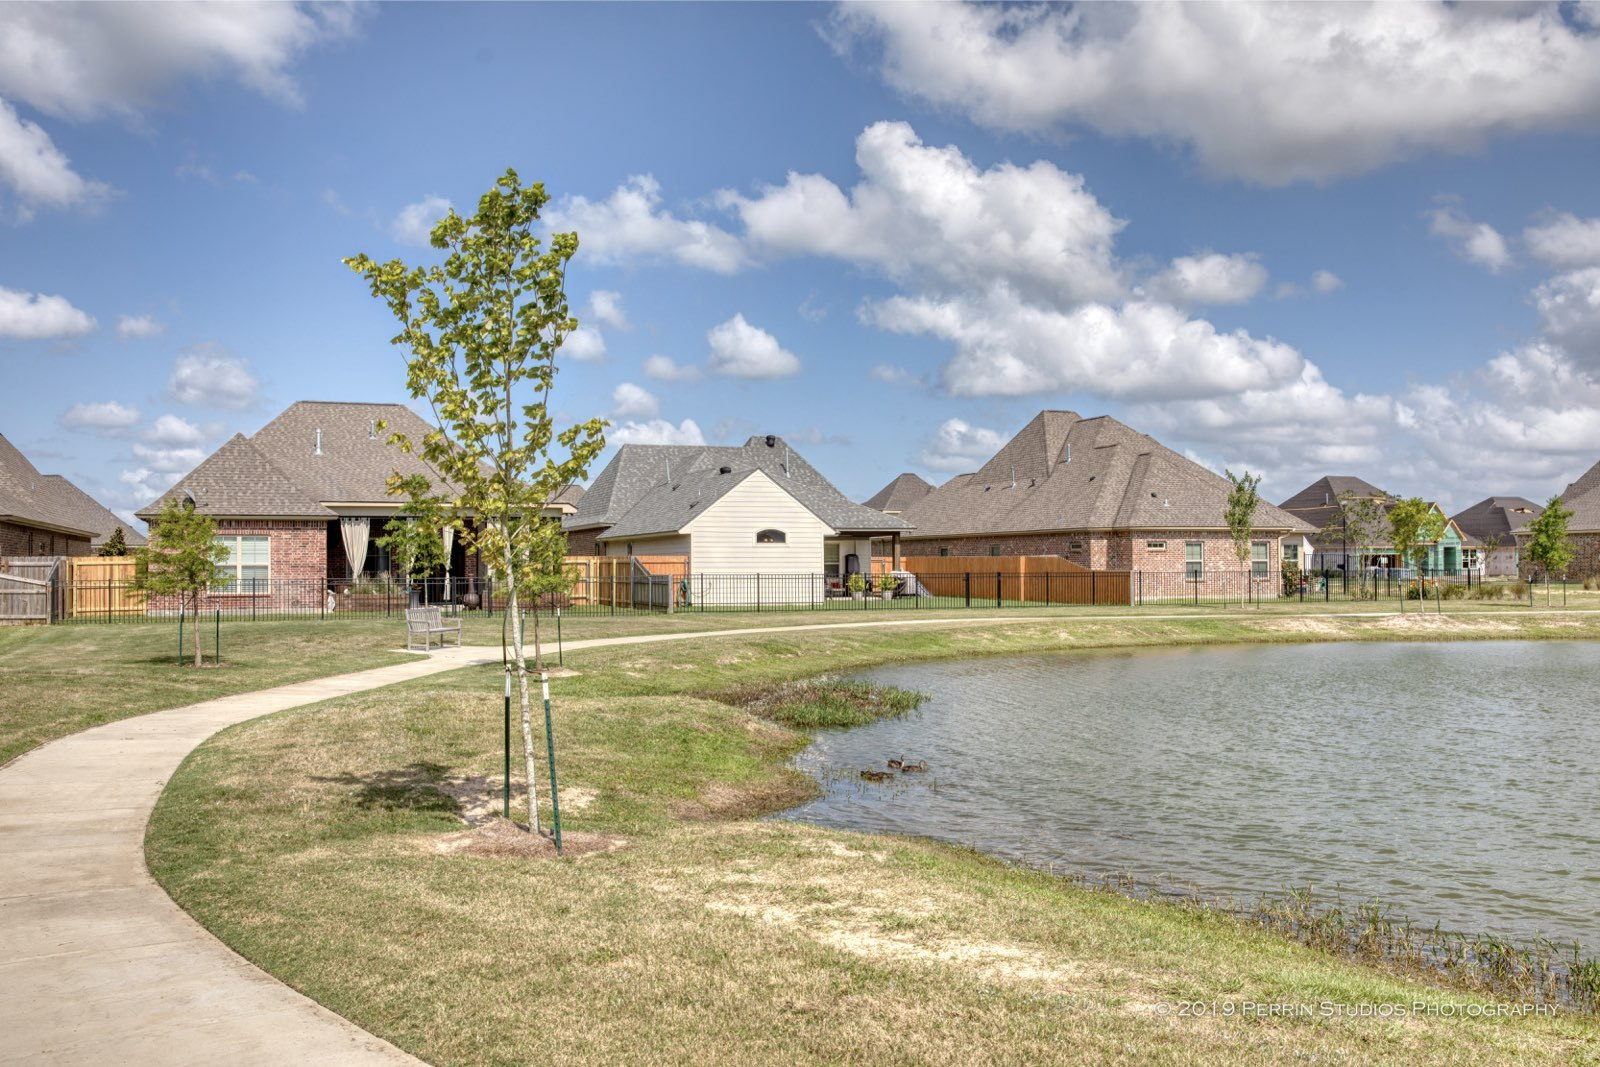 homes in Lakes of Morganfield along the pond